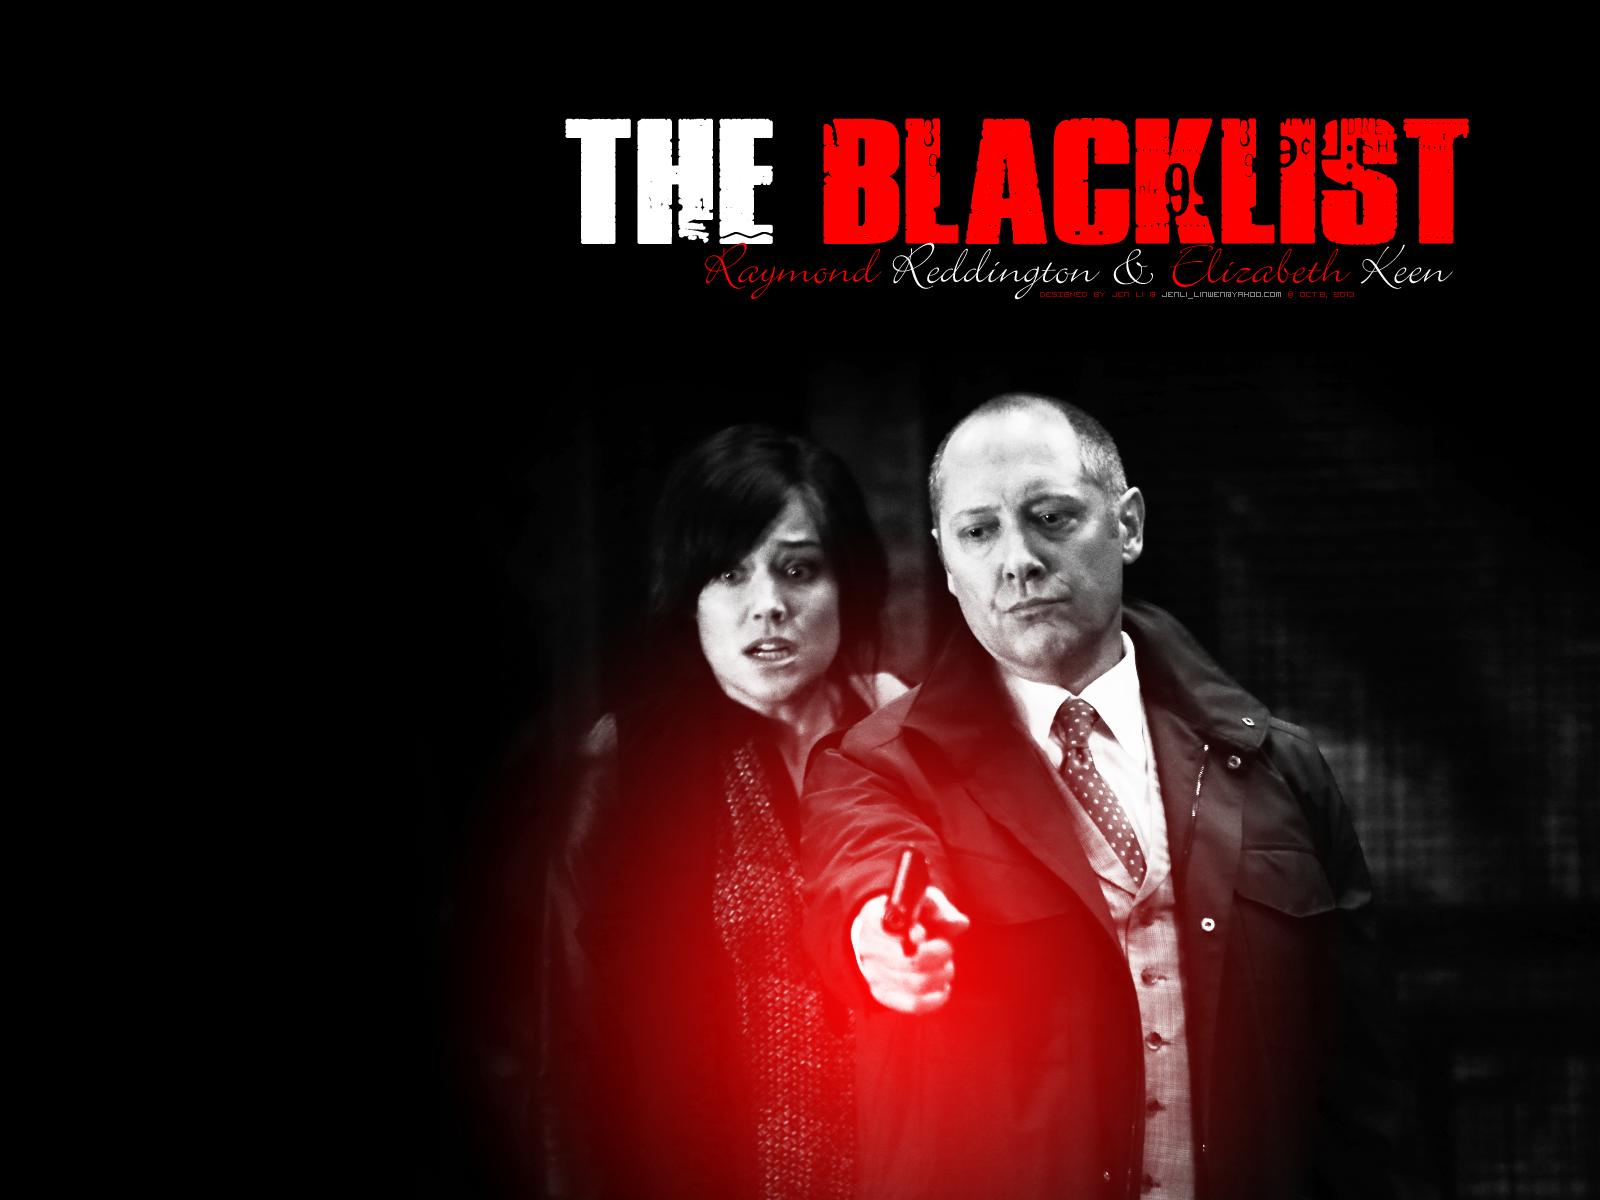 The Blacklist images Reddington and Keen HD wallpaper and background 1600x1200